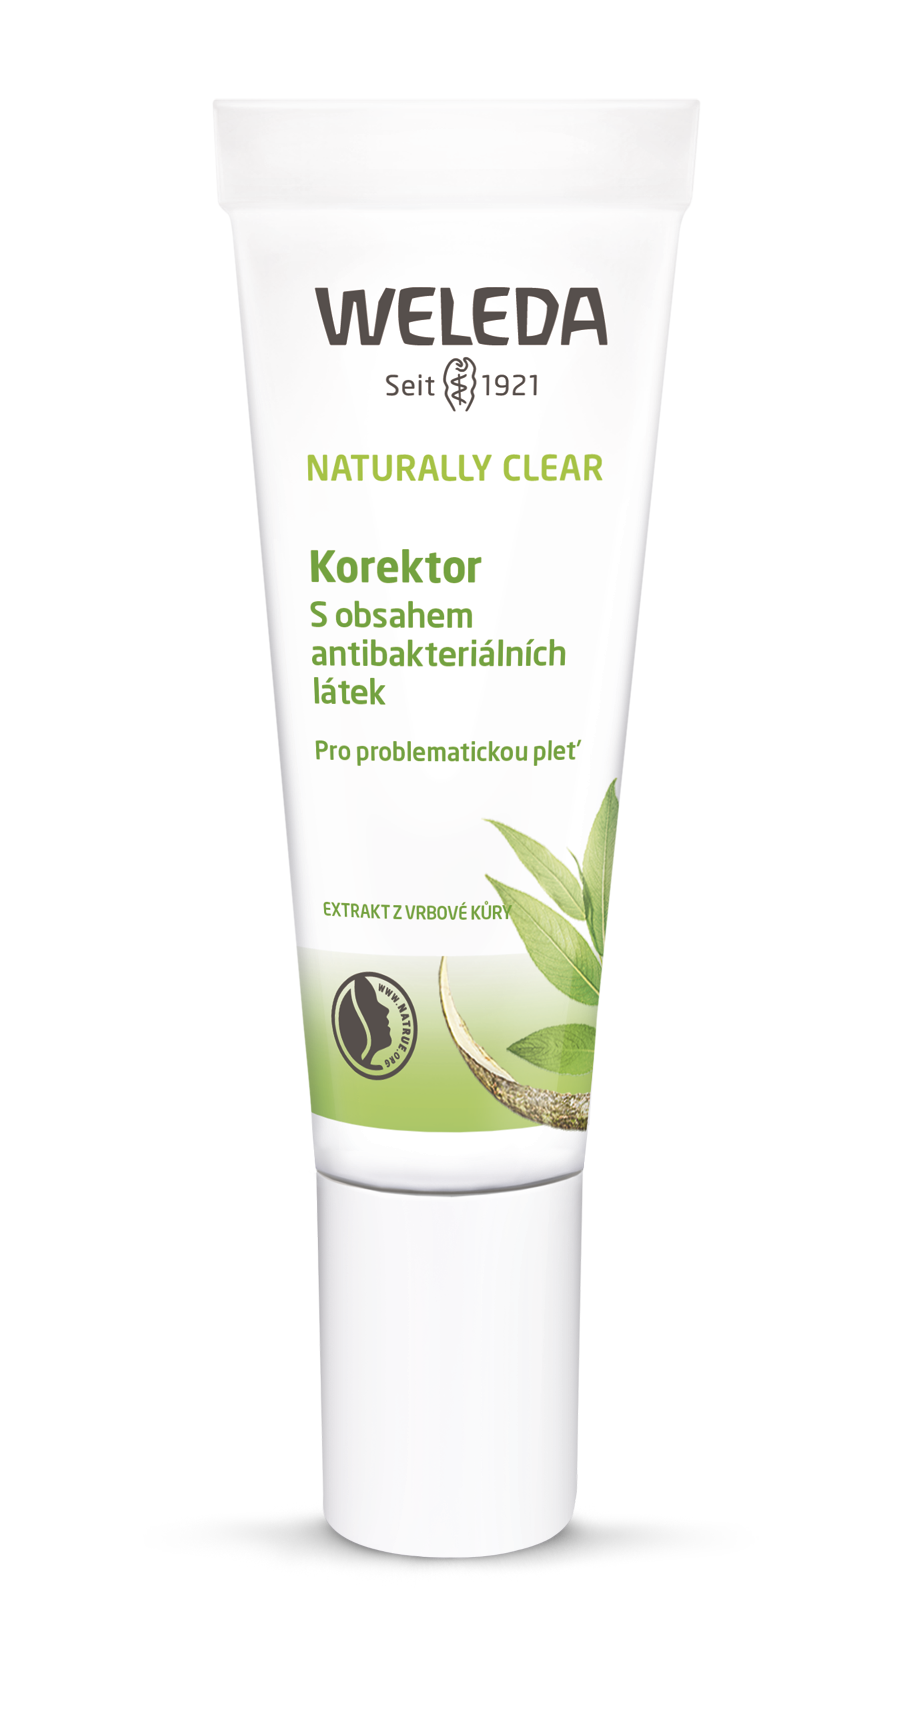 Weleda Naturally Clear Korektor na problematickou pleť 10ml